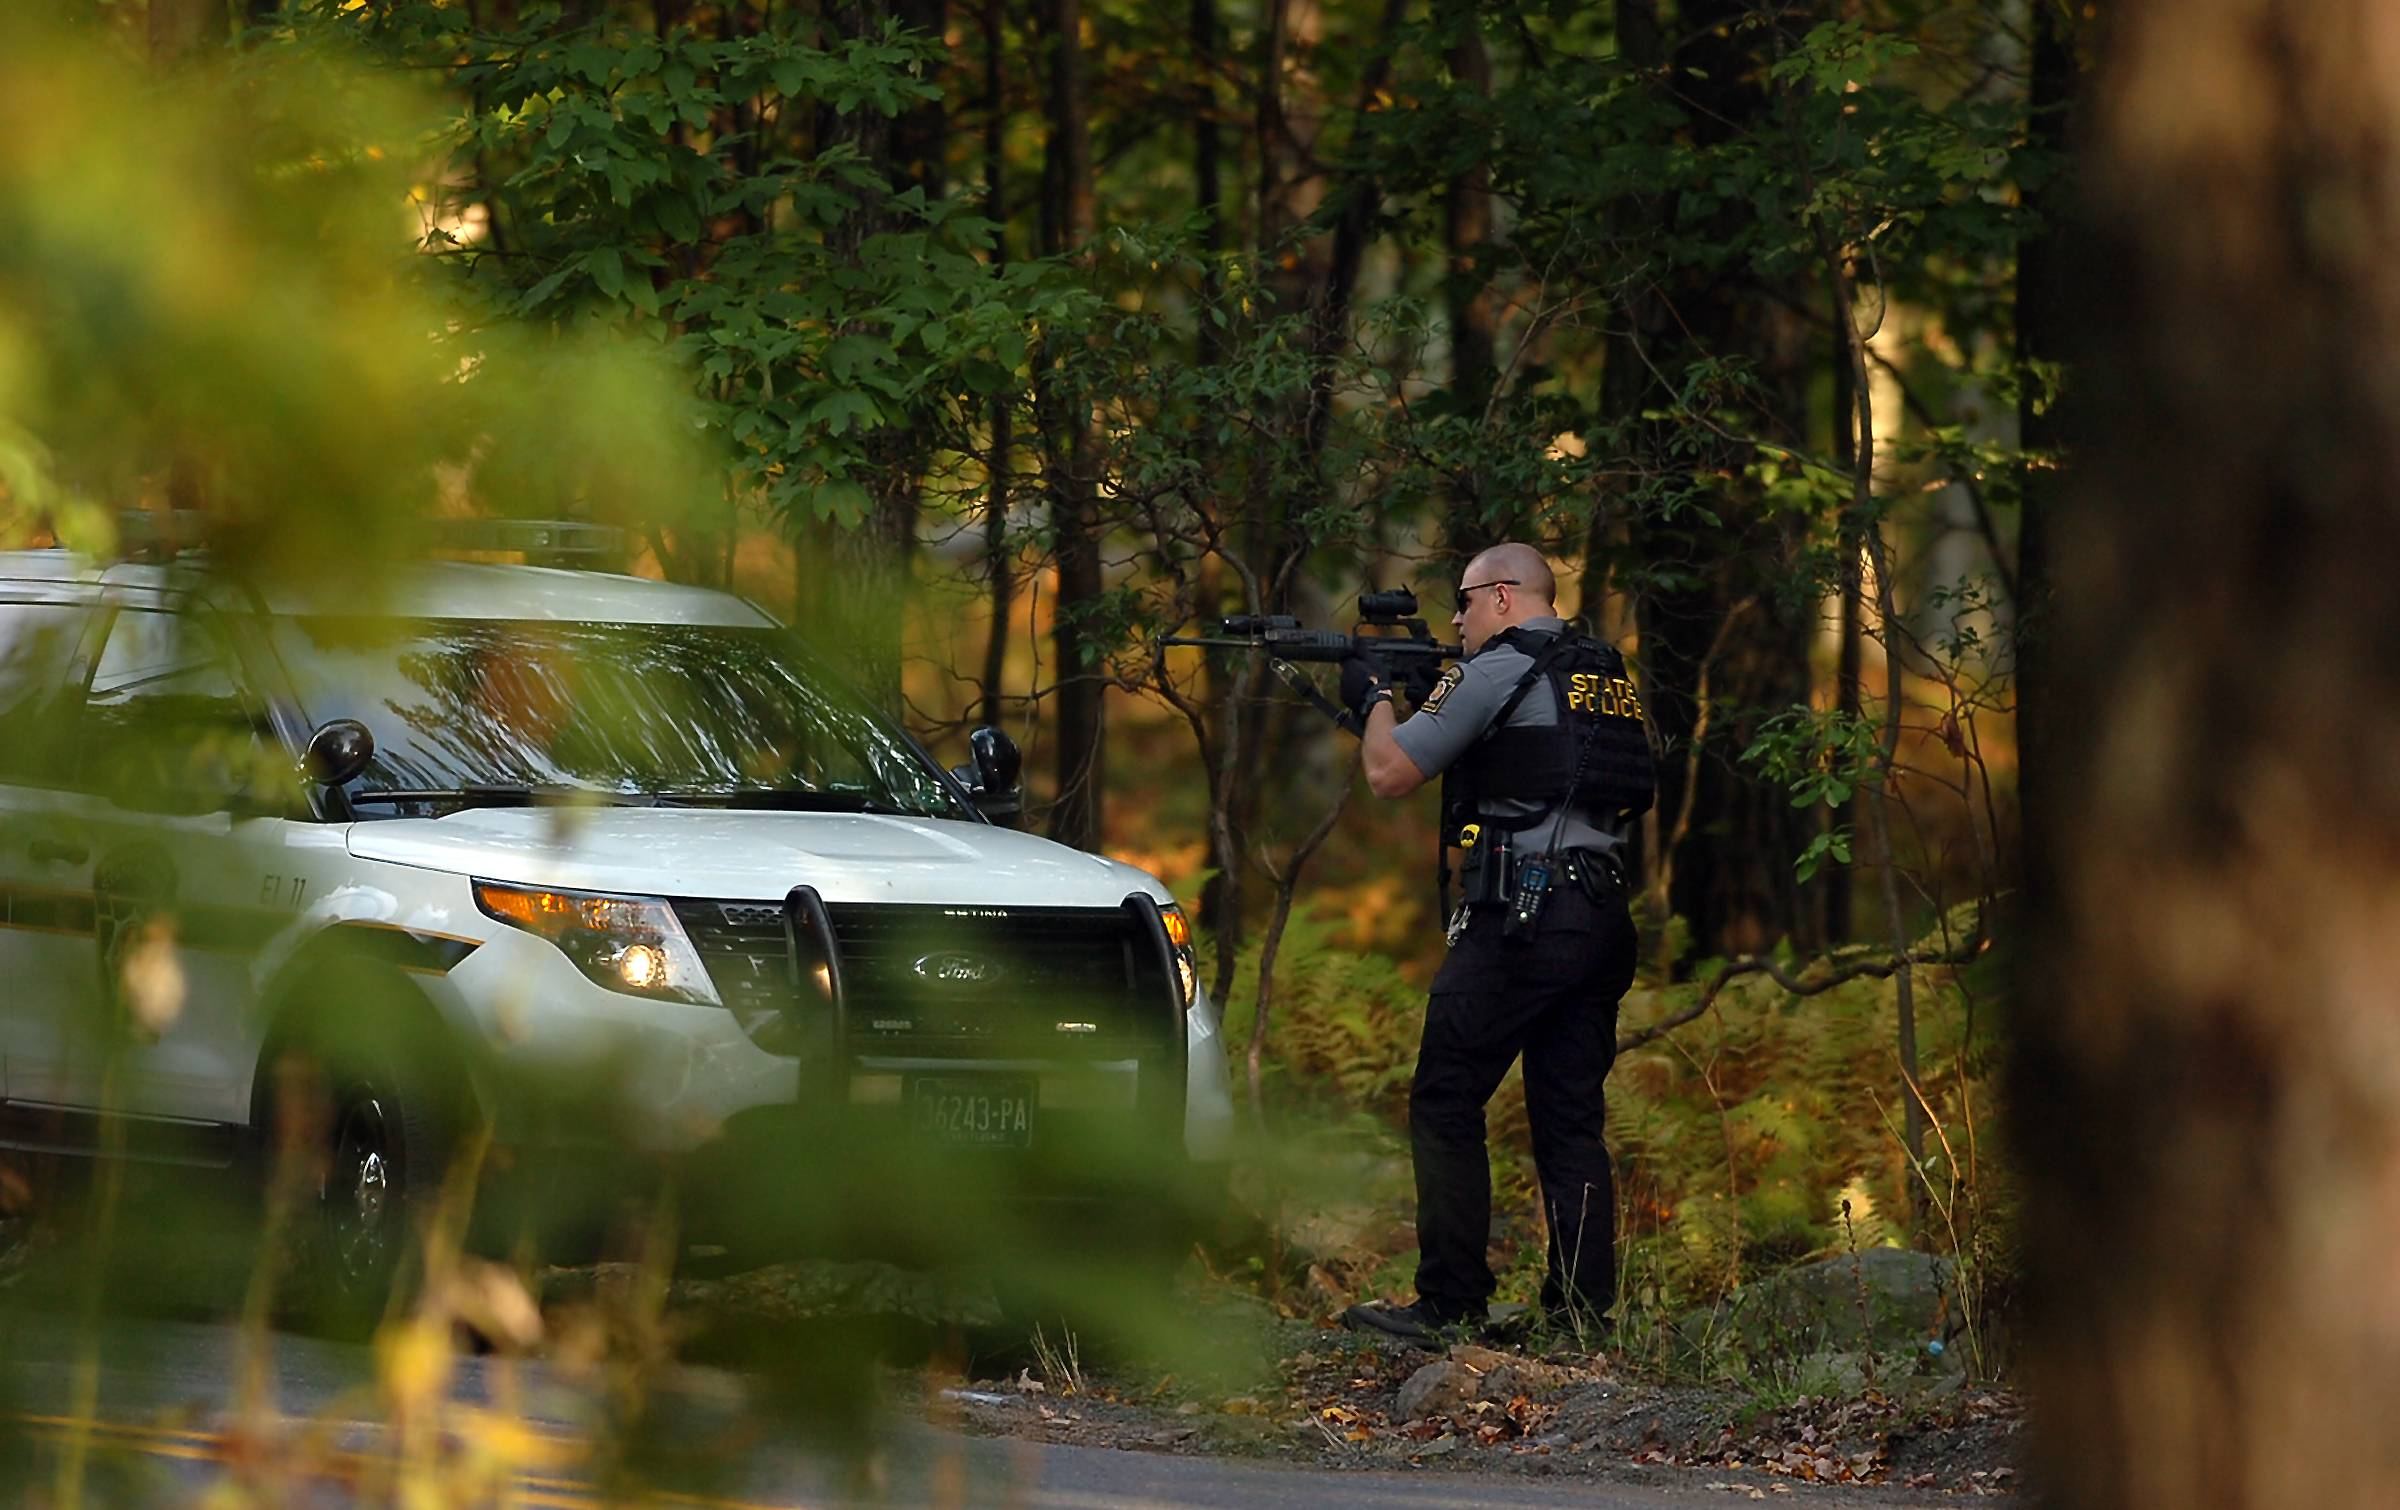 A 10-day manhunt for Eric Frein, the survivalist accused of ambushing a Pennsylvania State Police barracks, has narrowed to the rural area where he grew up and his parents still live, but the suspect has managed to elude capture despite the efforts of hundreds of law enforcement officials.